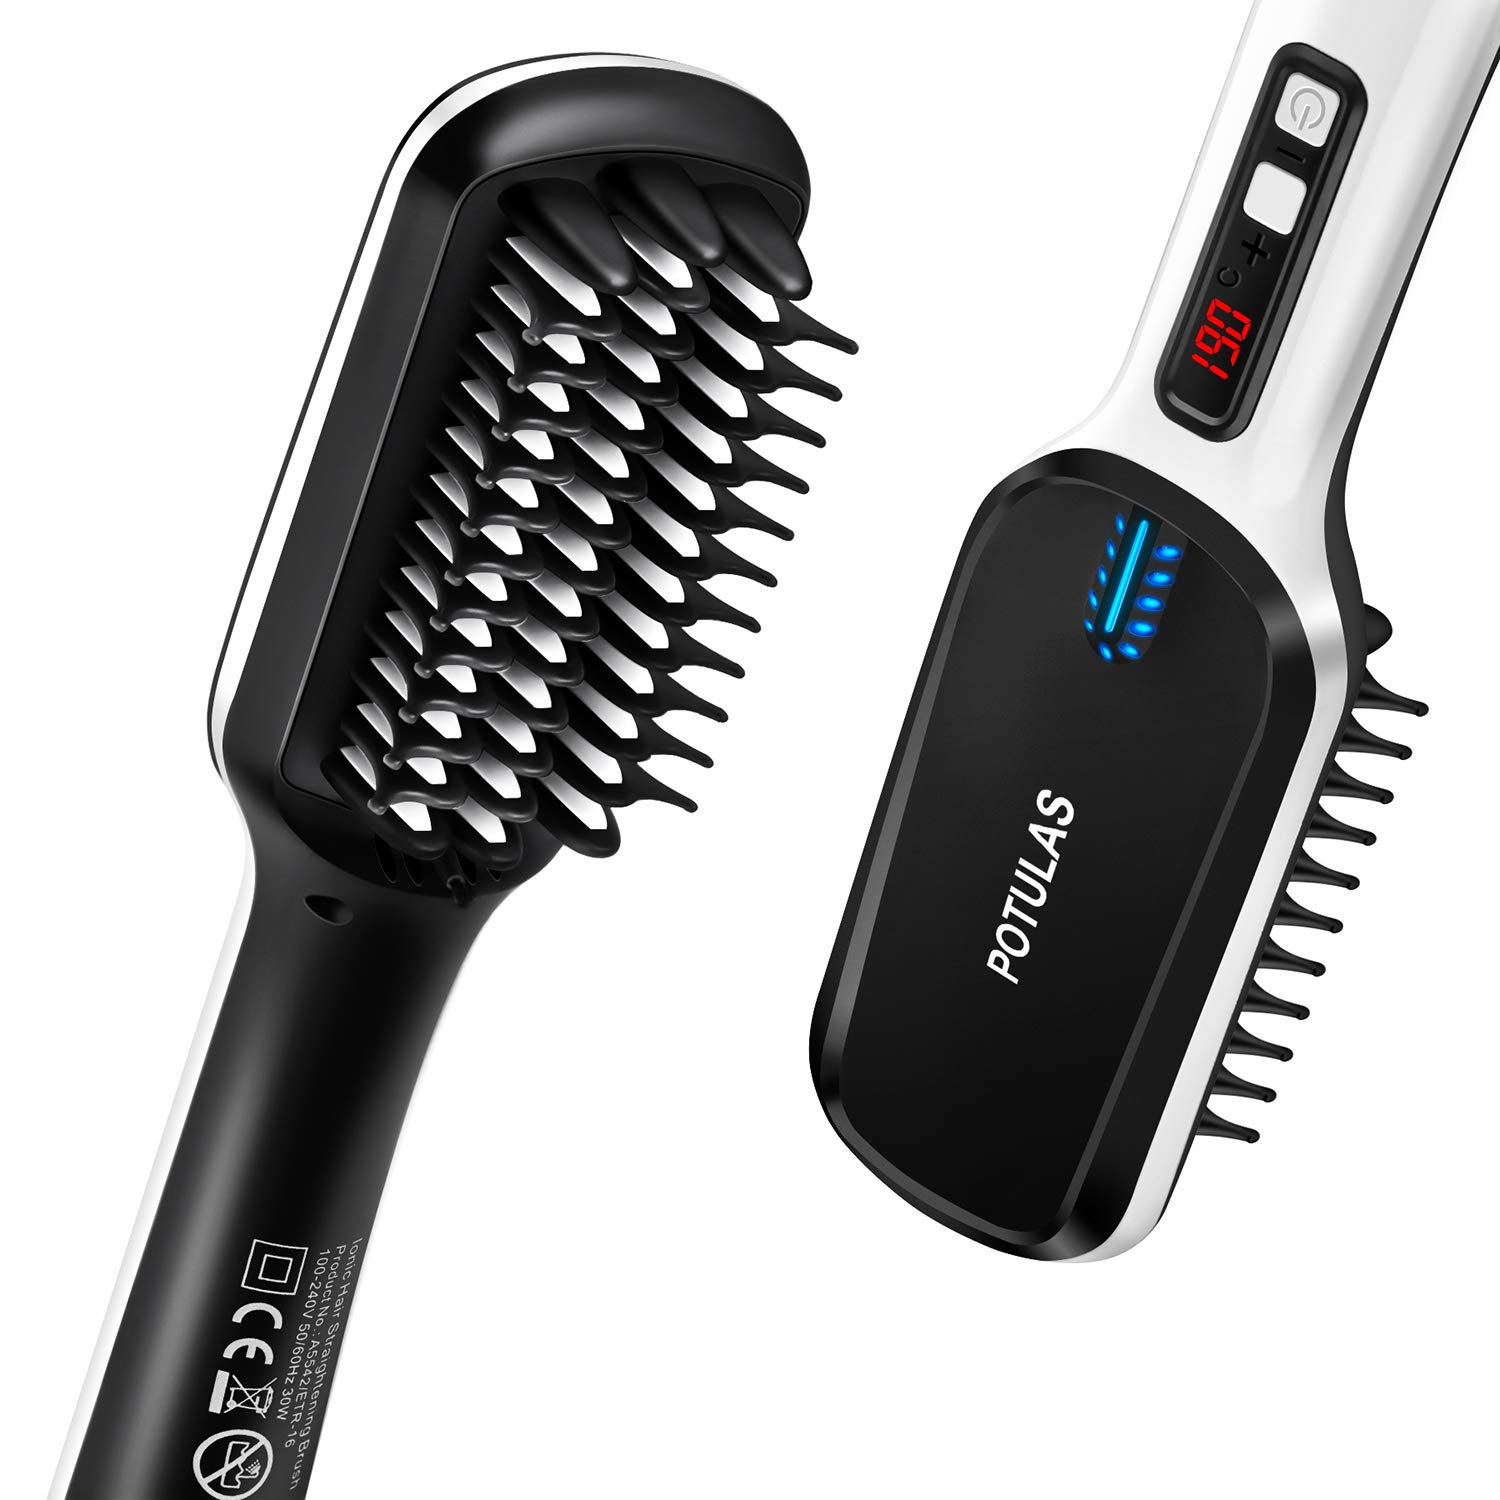 Ionic Hair Straightener Brush by Potulas, 30s Fast PTC Ceramic Heating Hair Beard Straightening Brush with Anti Scald Feature, Auto-Off Dual Voltage, Portable Electric Straightening Comb for Women